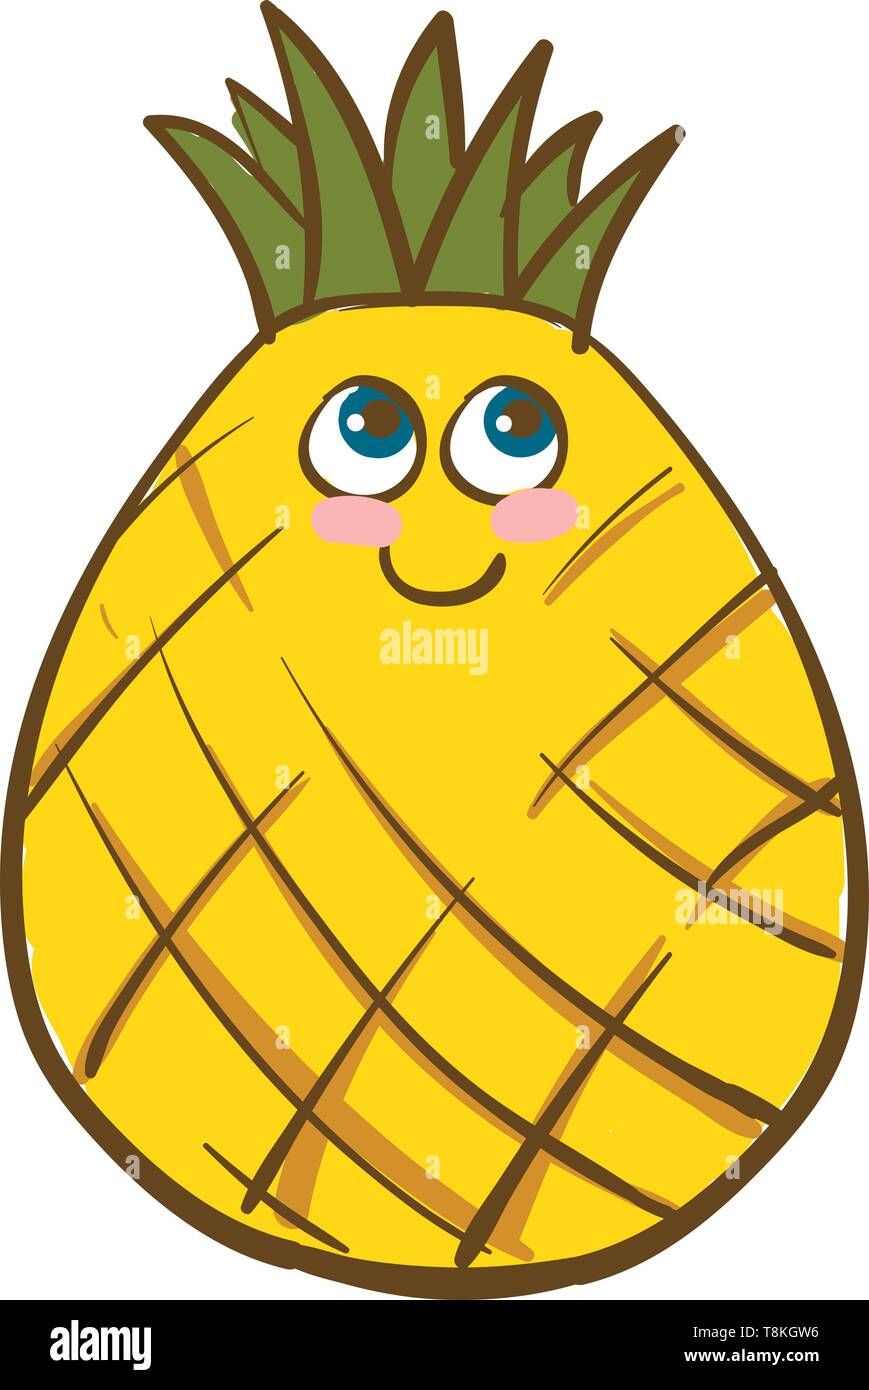 A Colour Illustration Of A Yellow Coloured Pineapple With Green Crown Vector Color Drawing Or Illustration Stock Vector Image Art Alamy Vector illustration. can be used for personal and commercial purposes according to the conditions of. https www alamy com a colour illustration of a yellow coloured pineapple with green crown vector color drawing or illustration image246292738 html